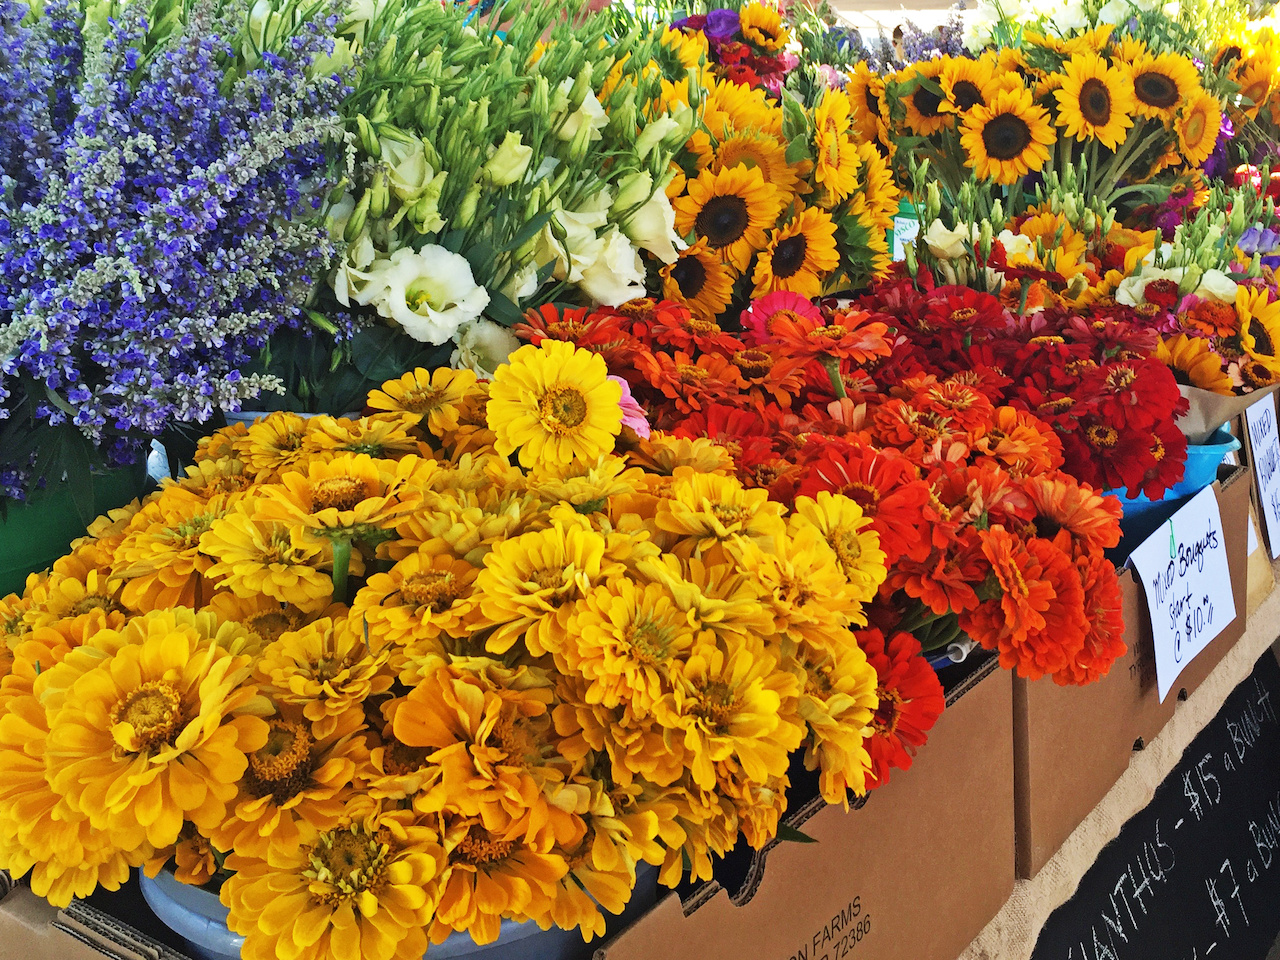 A CSA box may include flowers, in addition to vegetables or other products produced at the farm.